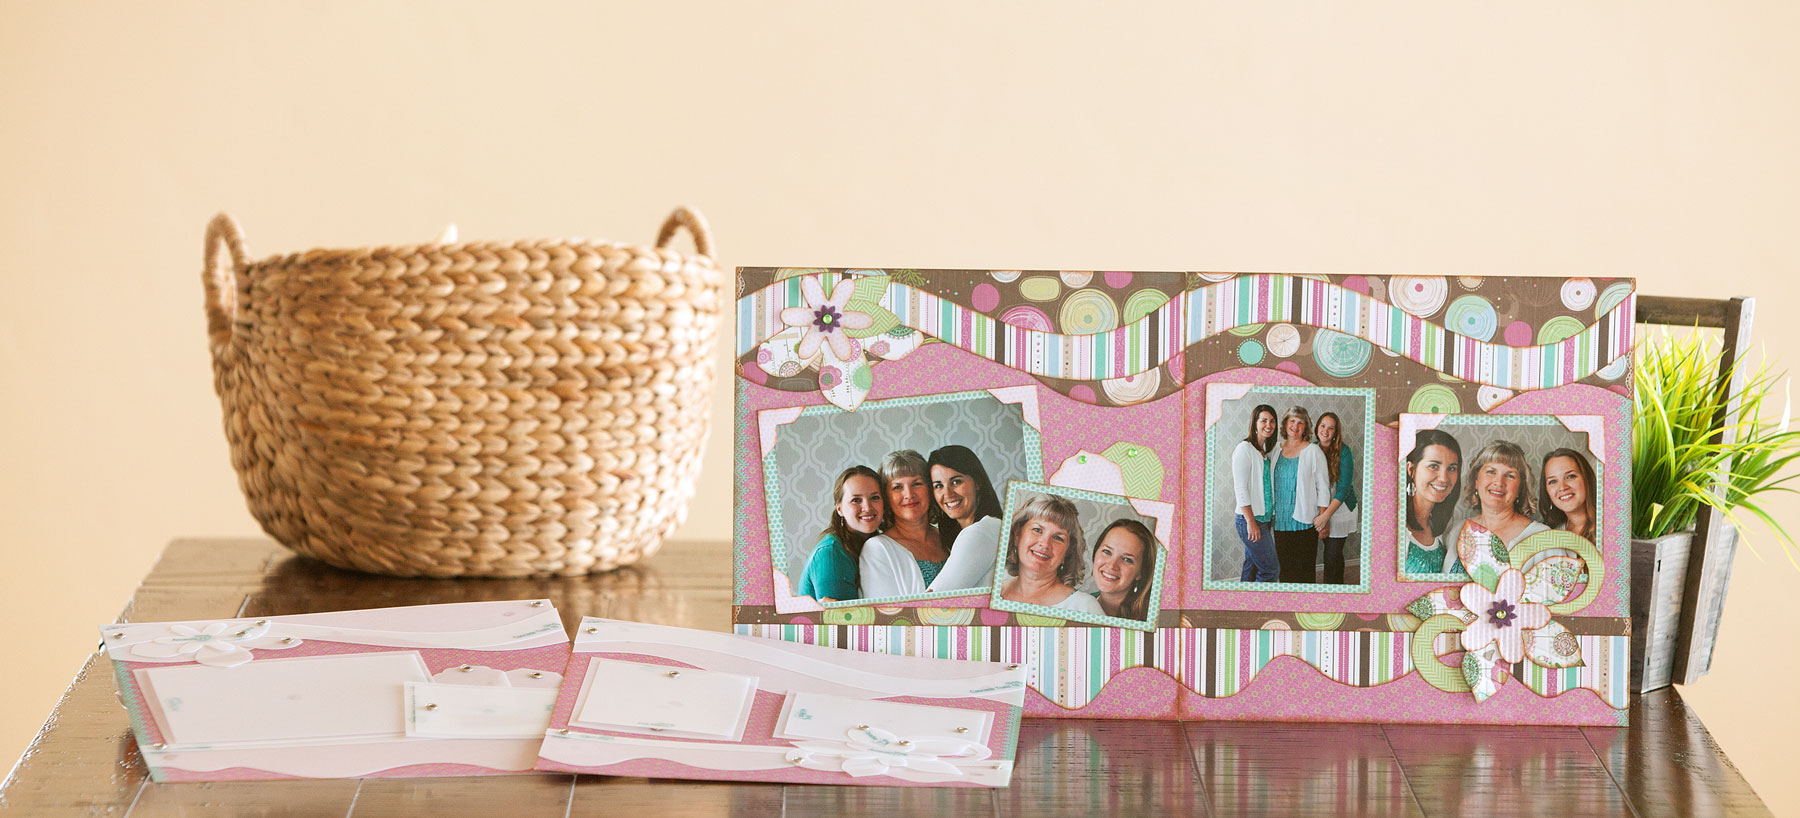 Check out these awesome scrapbooking ideas.